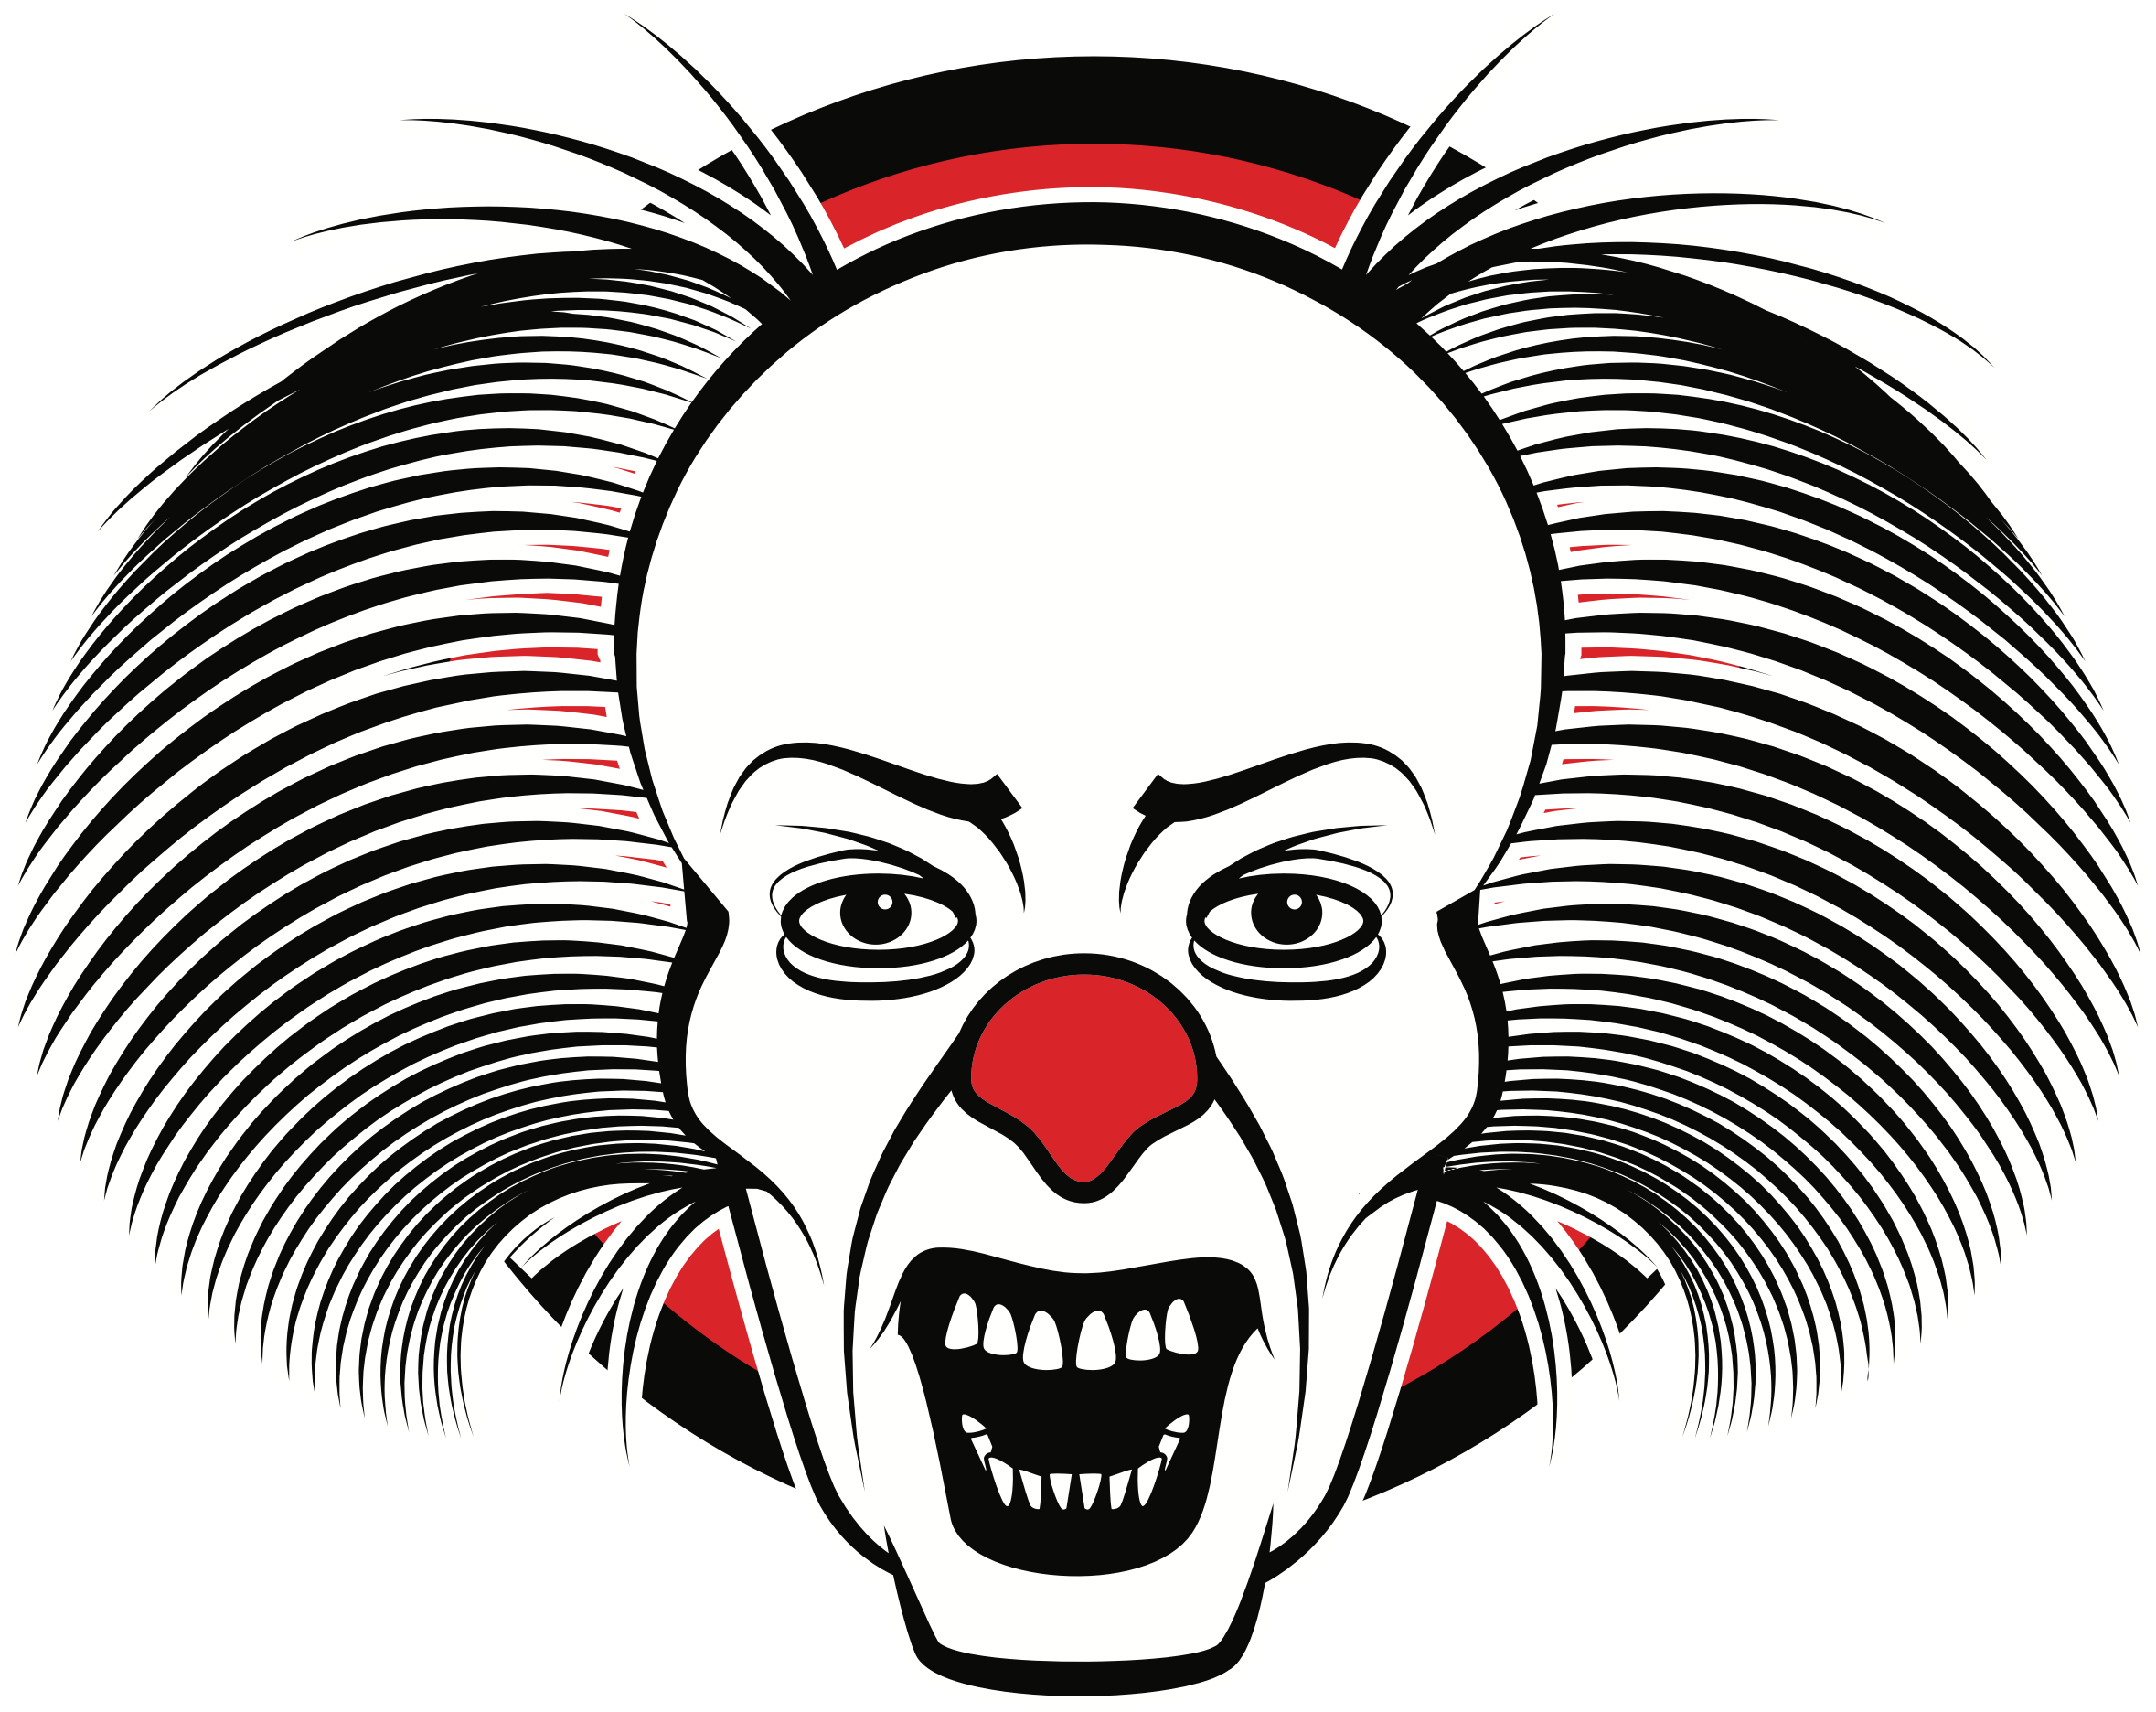 Clown (#1) by oksmith